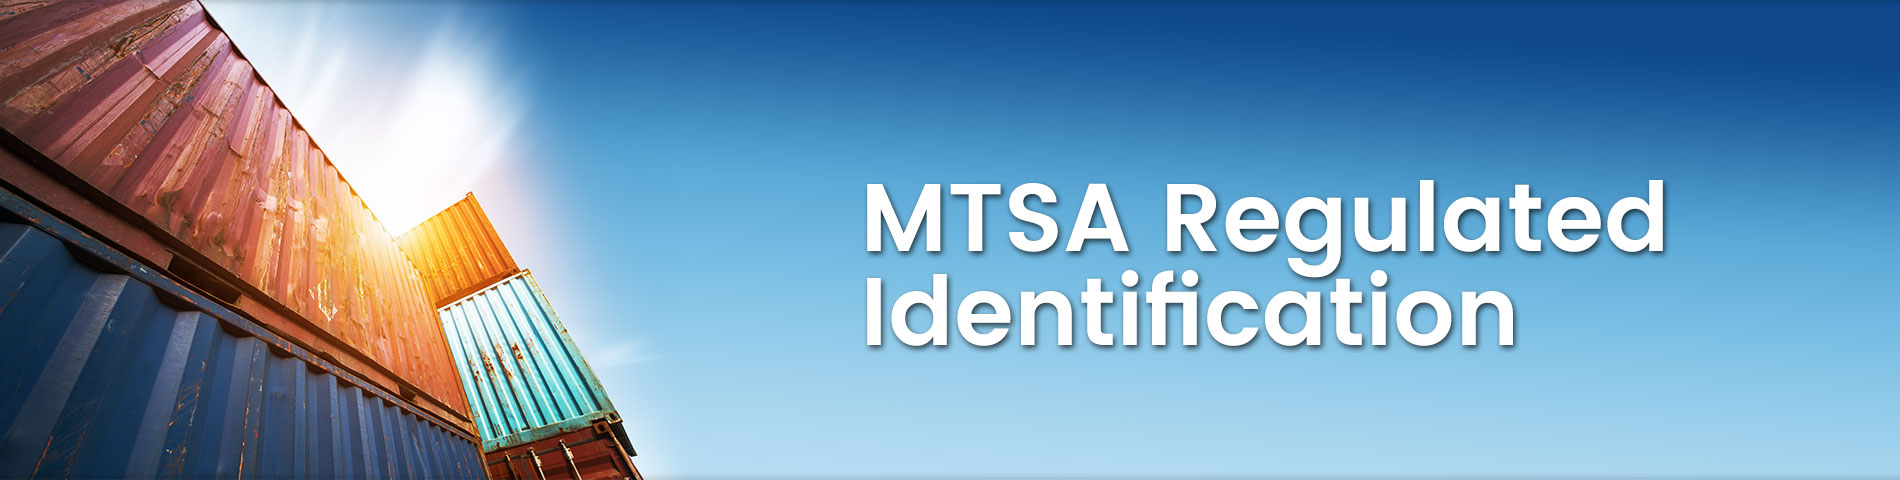 MTSA Regulated Identification